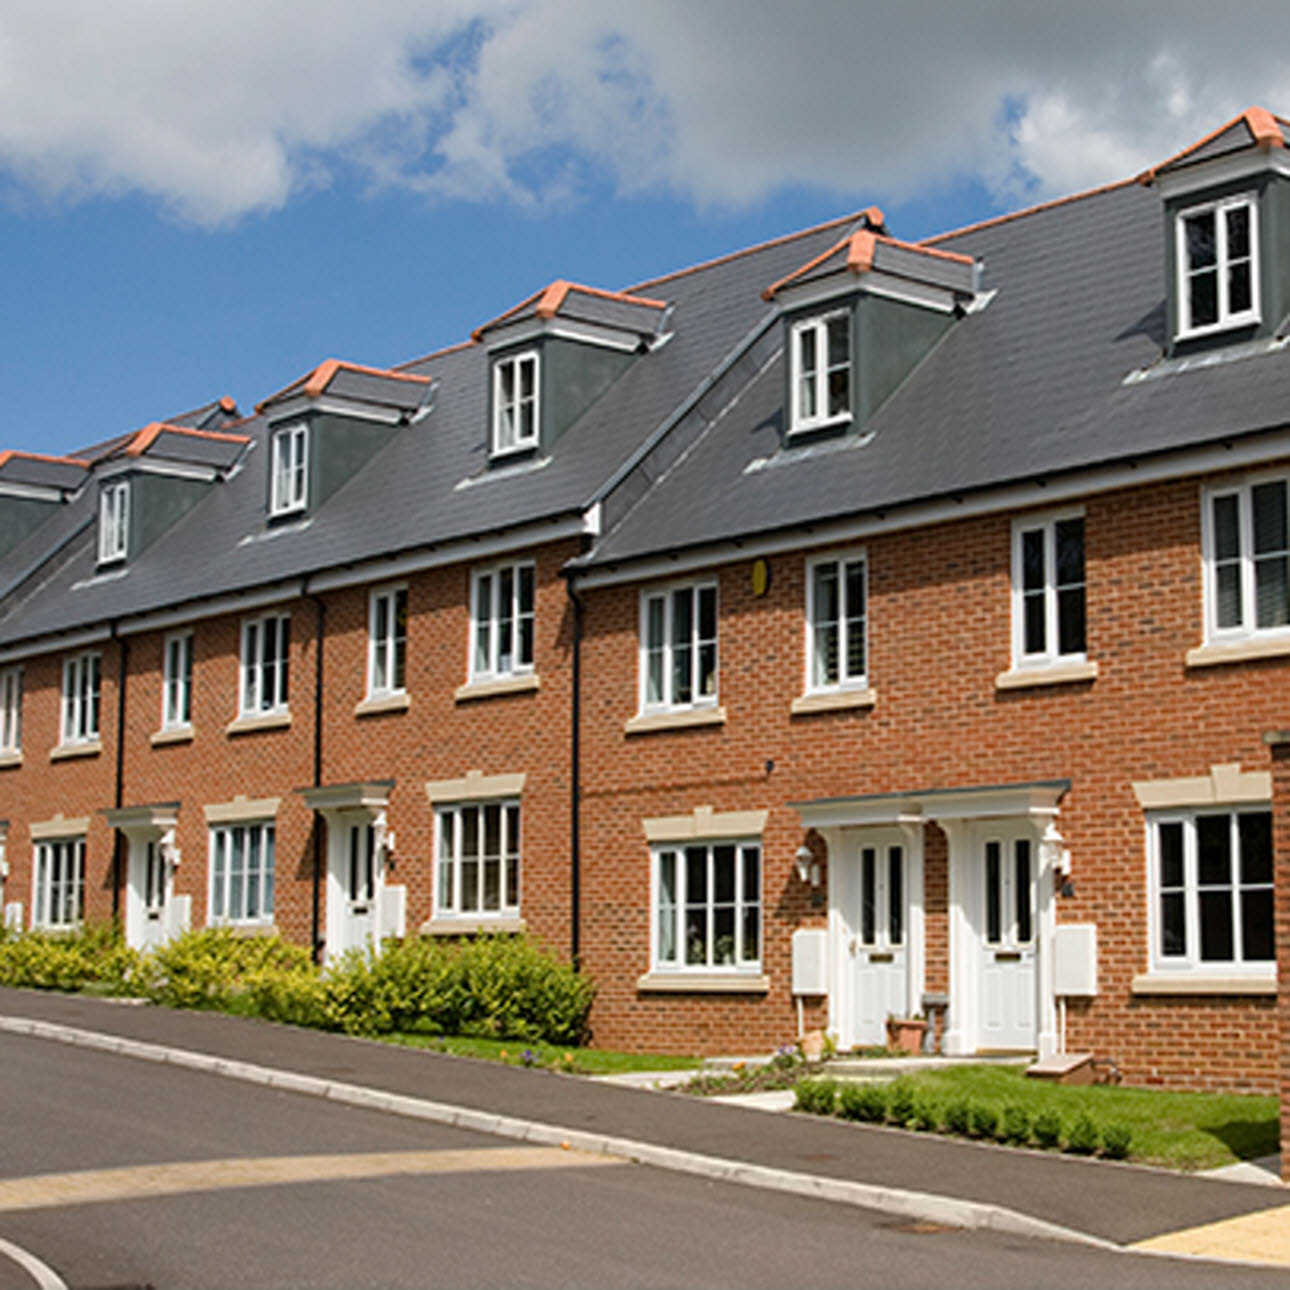 Exterior shot of a row of new build terraced houses